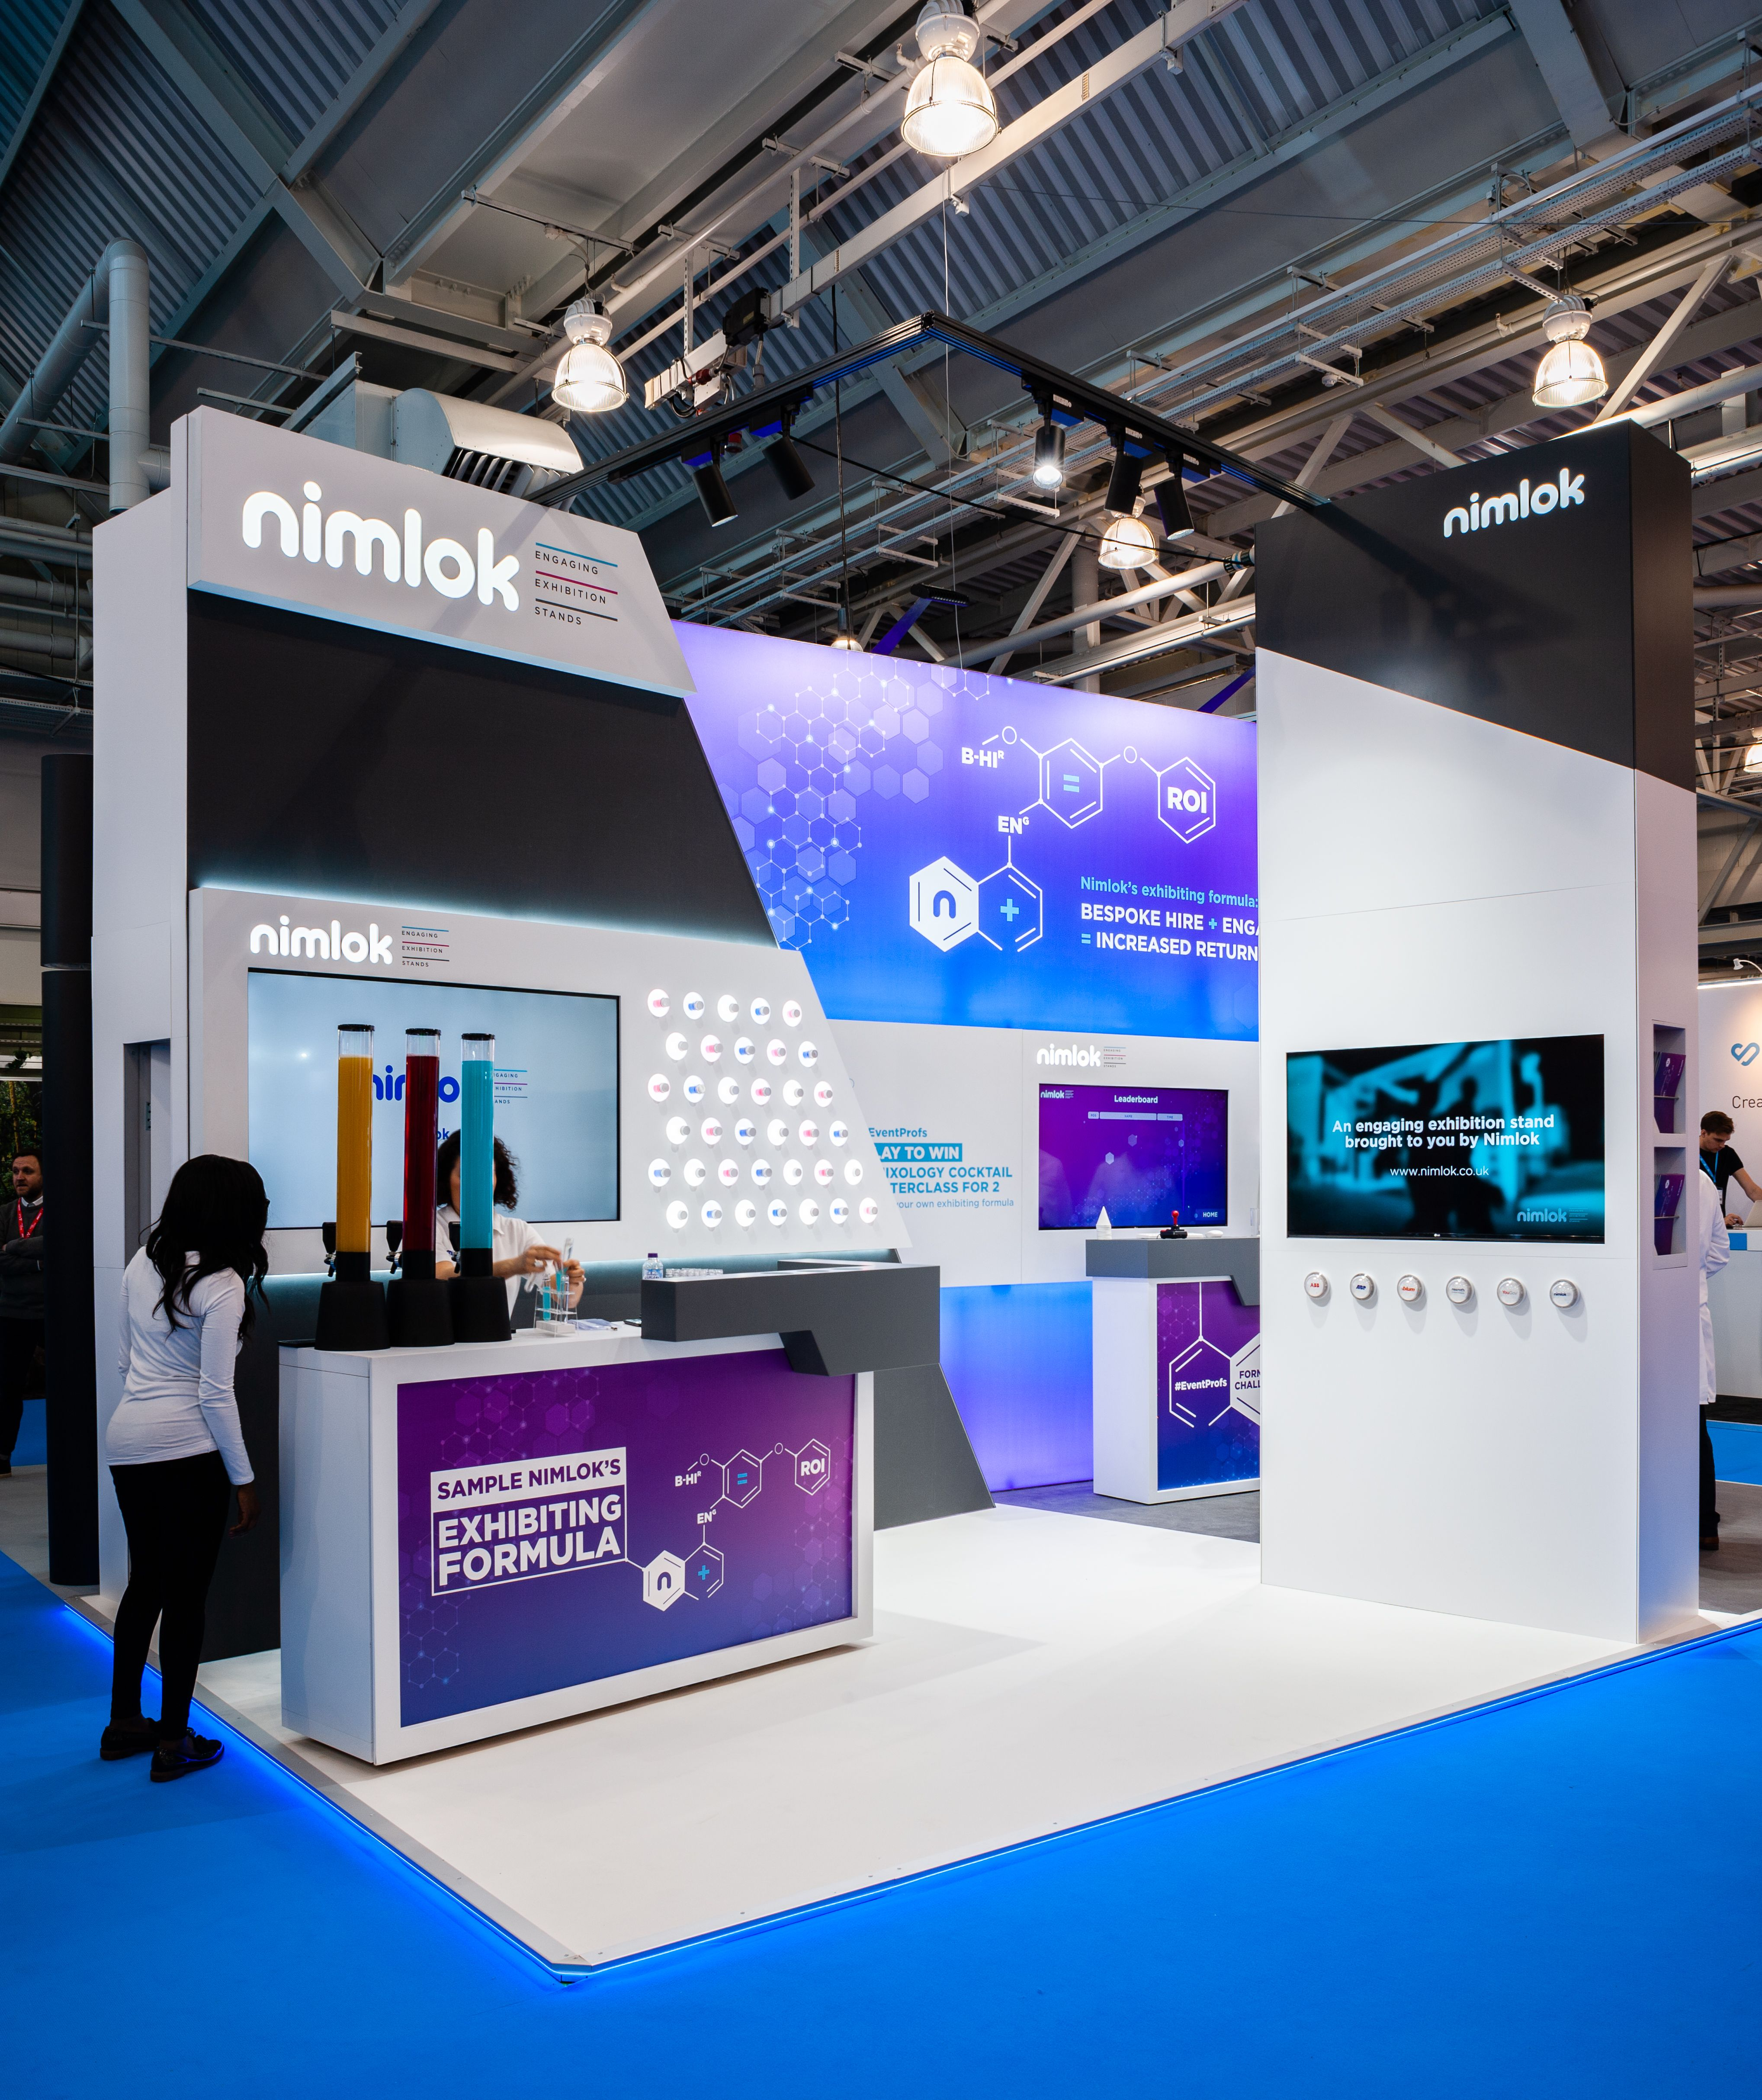 Marketing Ideas For Exhibition Stand : The nimlok laboratory featured at marketing week live where we